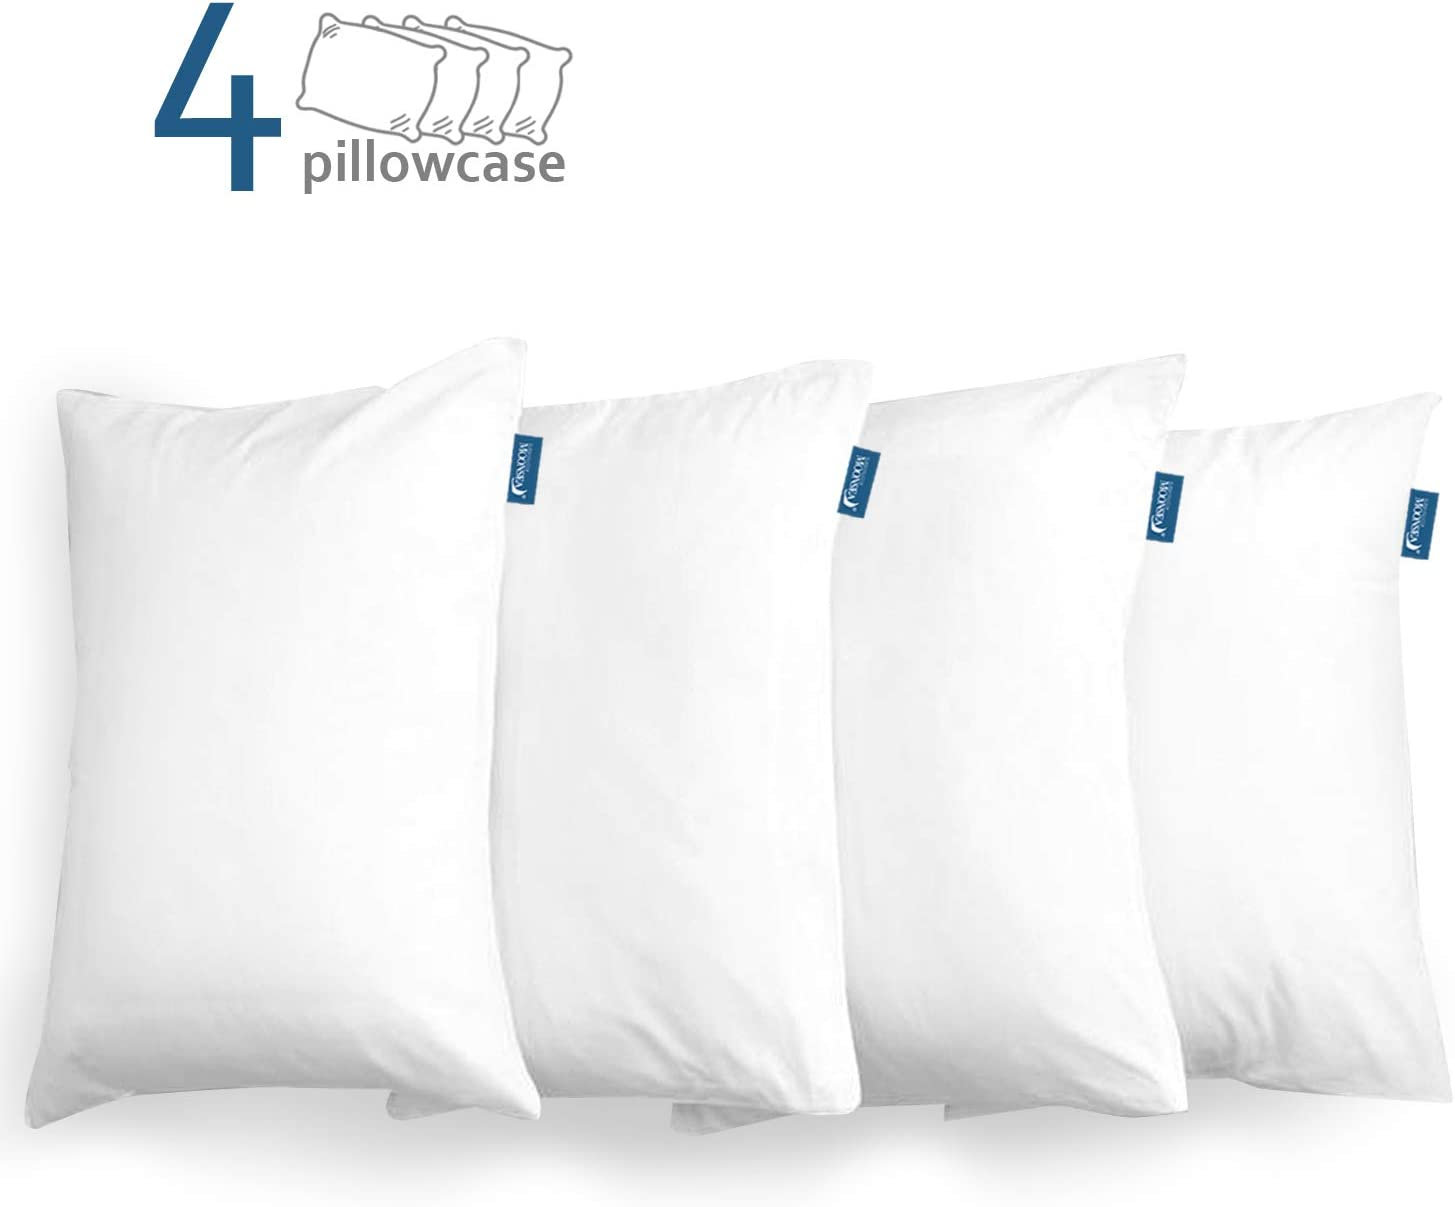 Pillow 20 by 20 Inch White crocodile faux leather vinyl home decor indoor outdoor water resistant pillow with zipper